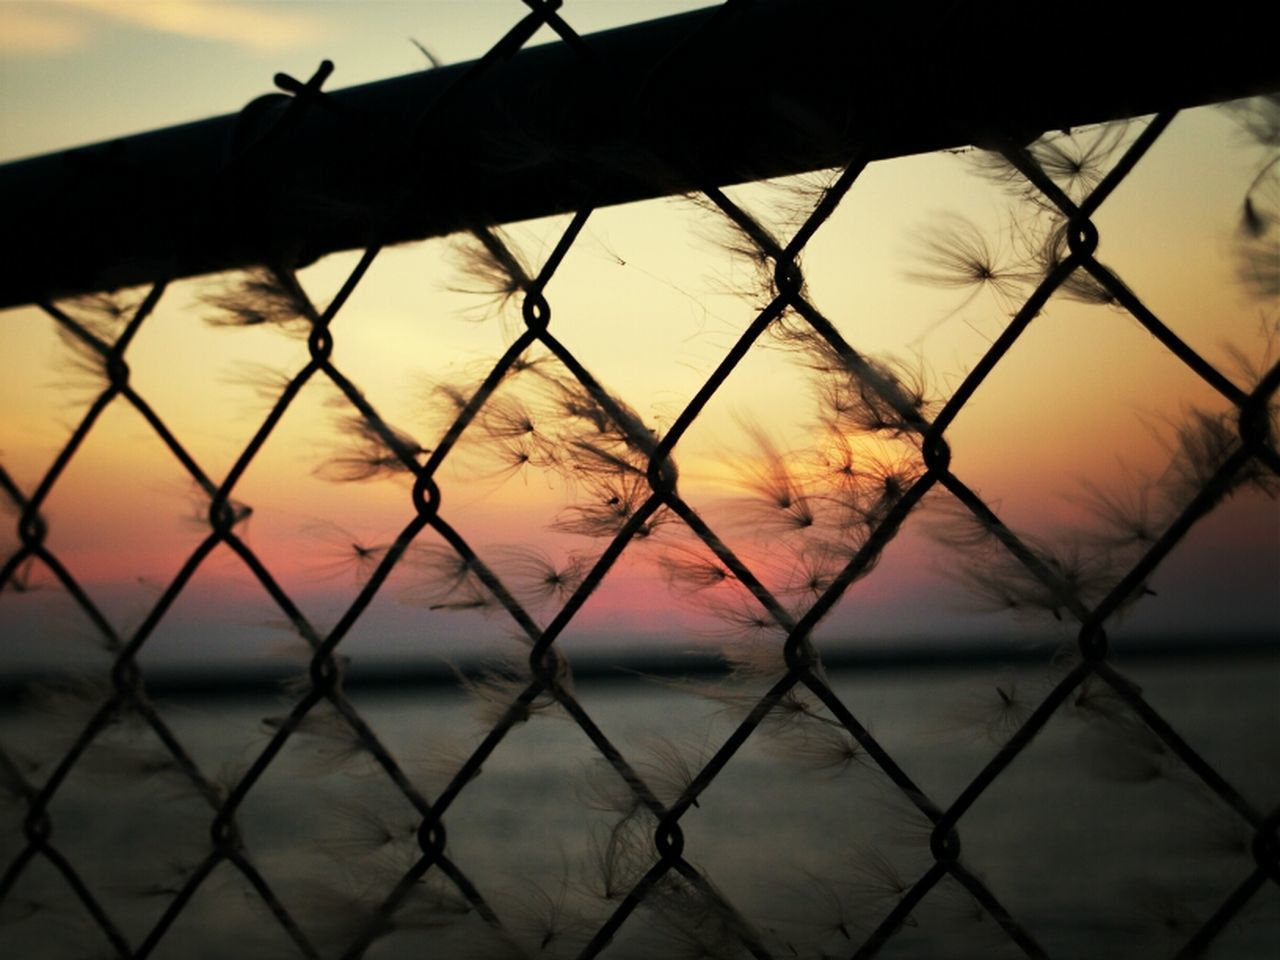 sunset, safety, chainlink fence, sky, protection, nature, metal, beauty in nature, water, security, outdoors, scenics, no people, sea, focus on foreground, sun, silhouette, tranquility, tranquil scene, close-up, cloud - sky, day